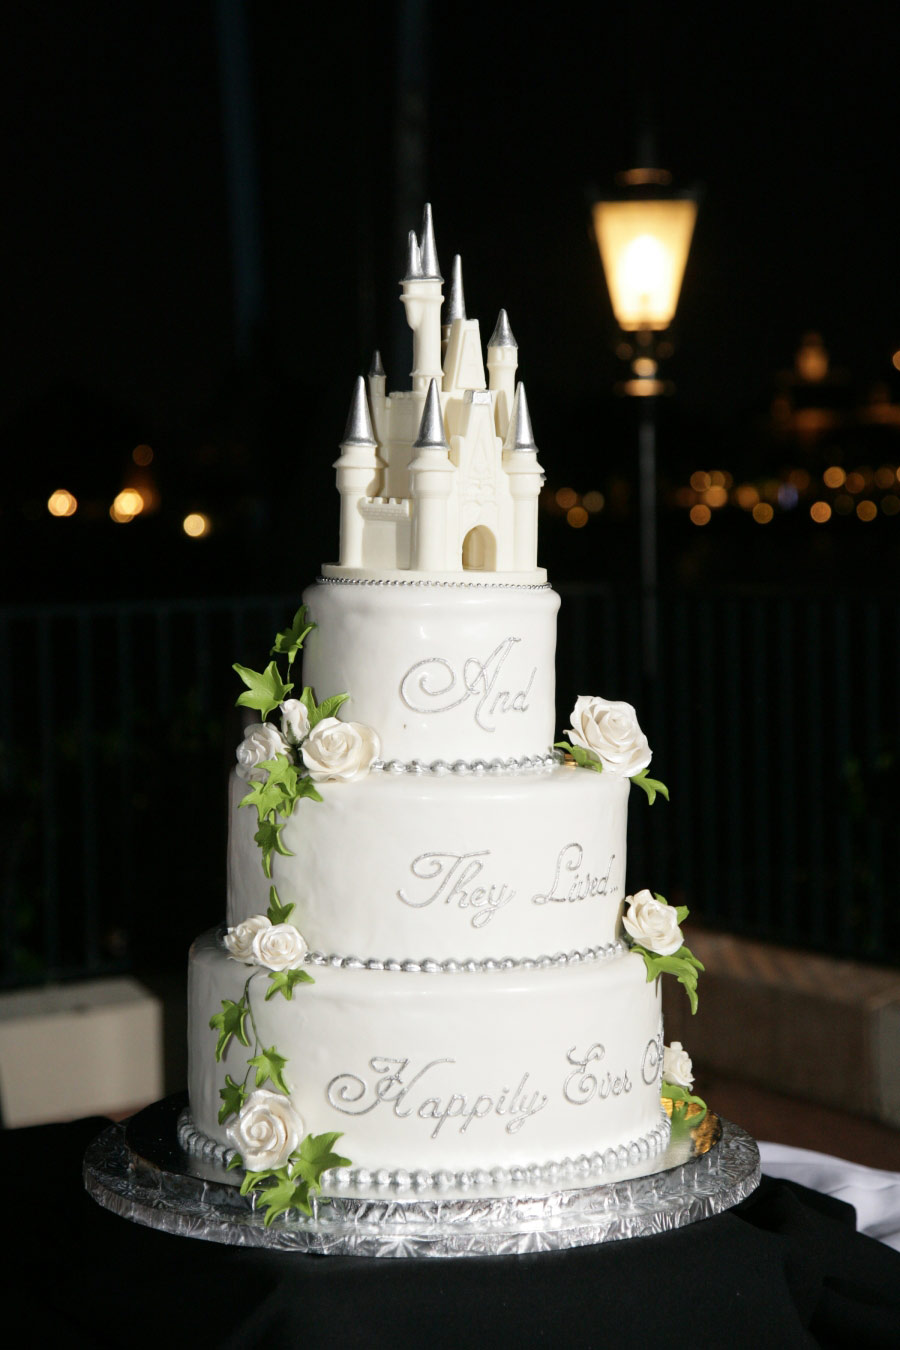 Weddings at disney parks and resorts - Untraditional Cake Toppers